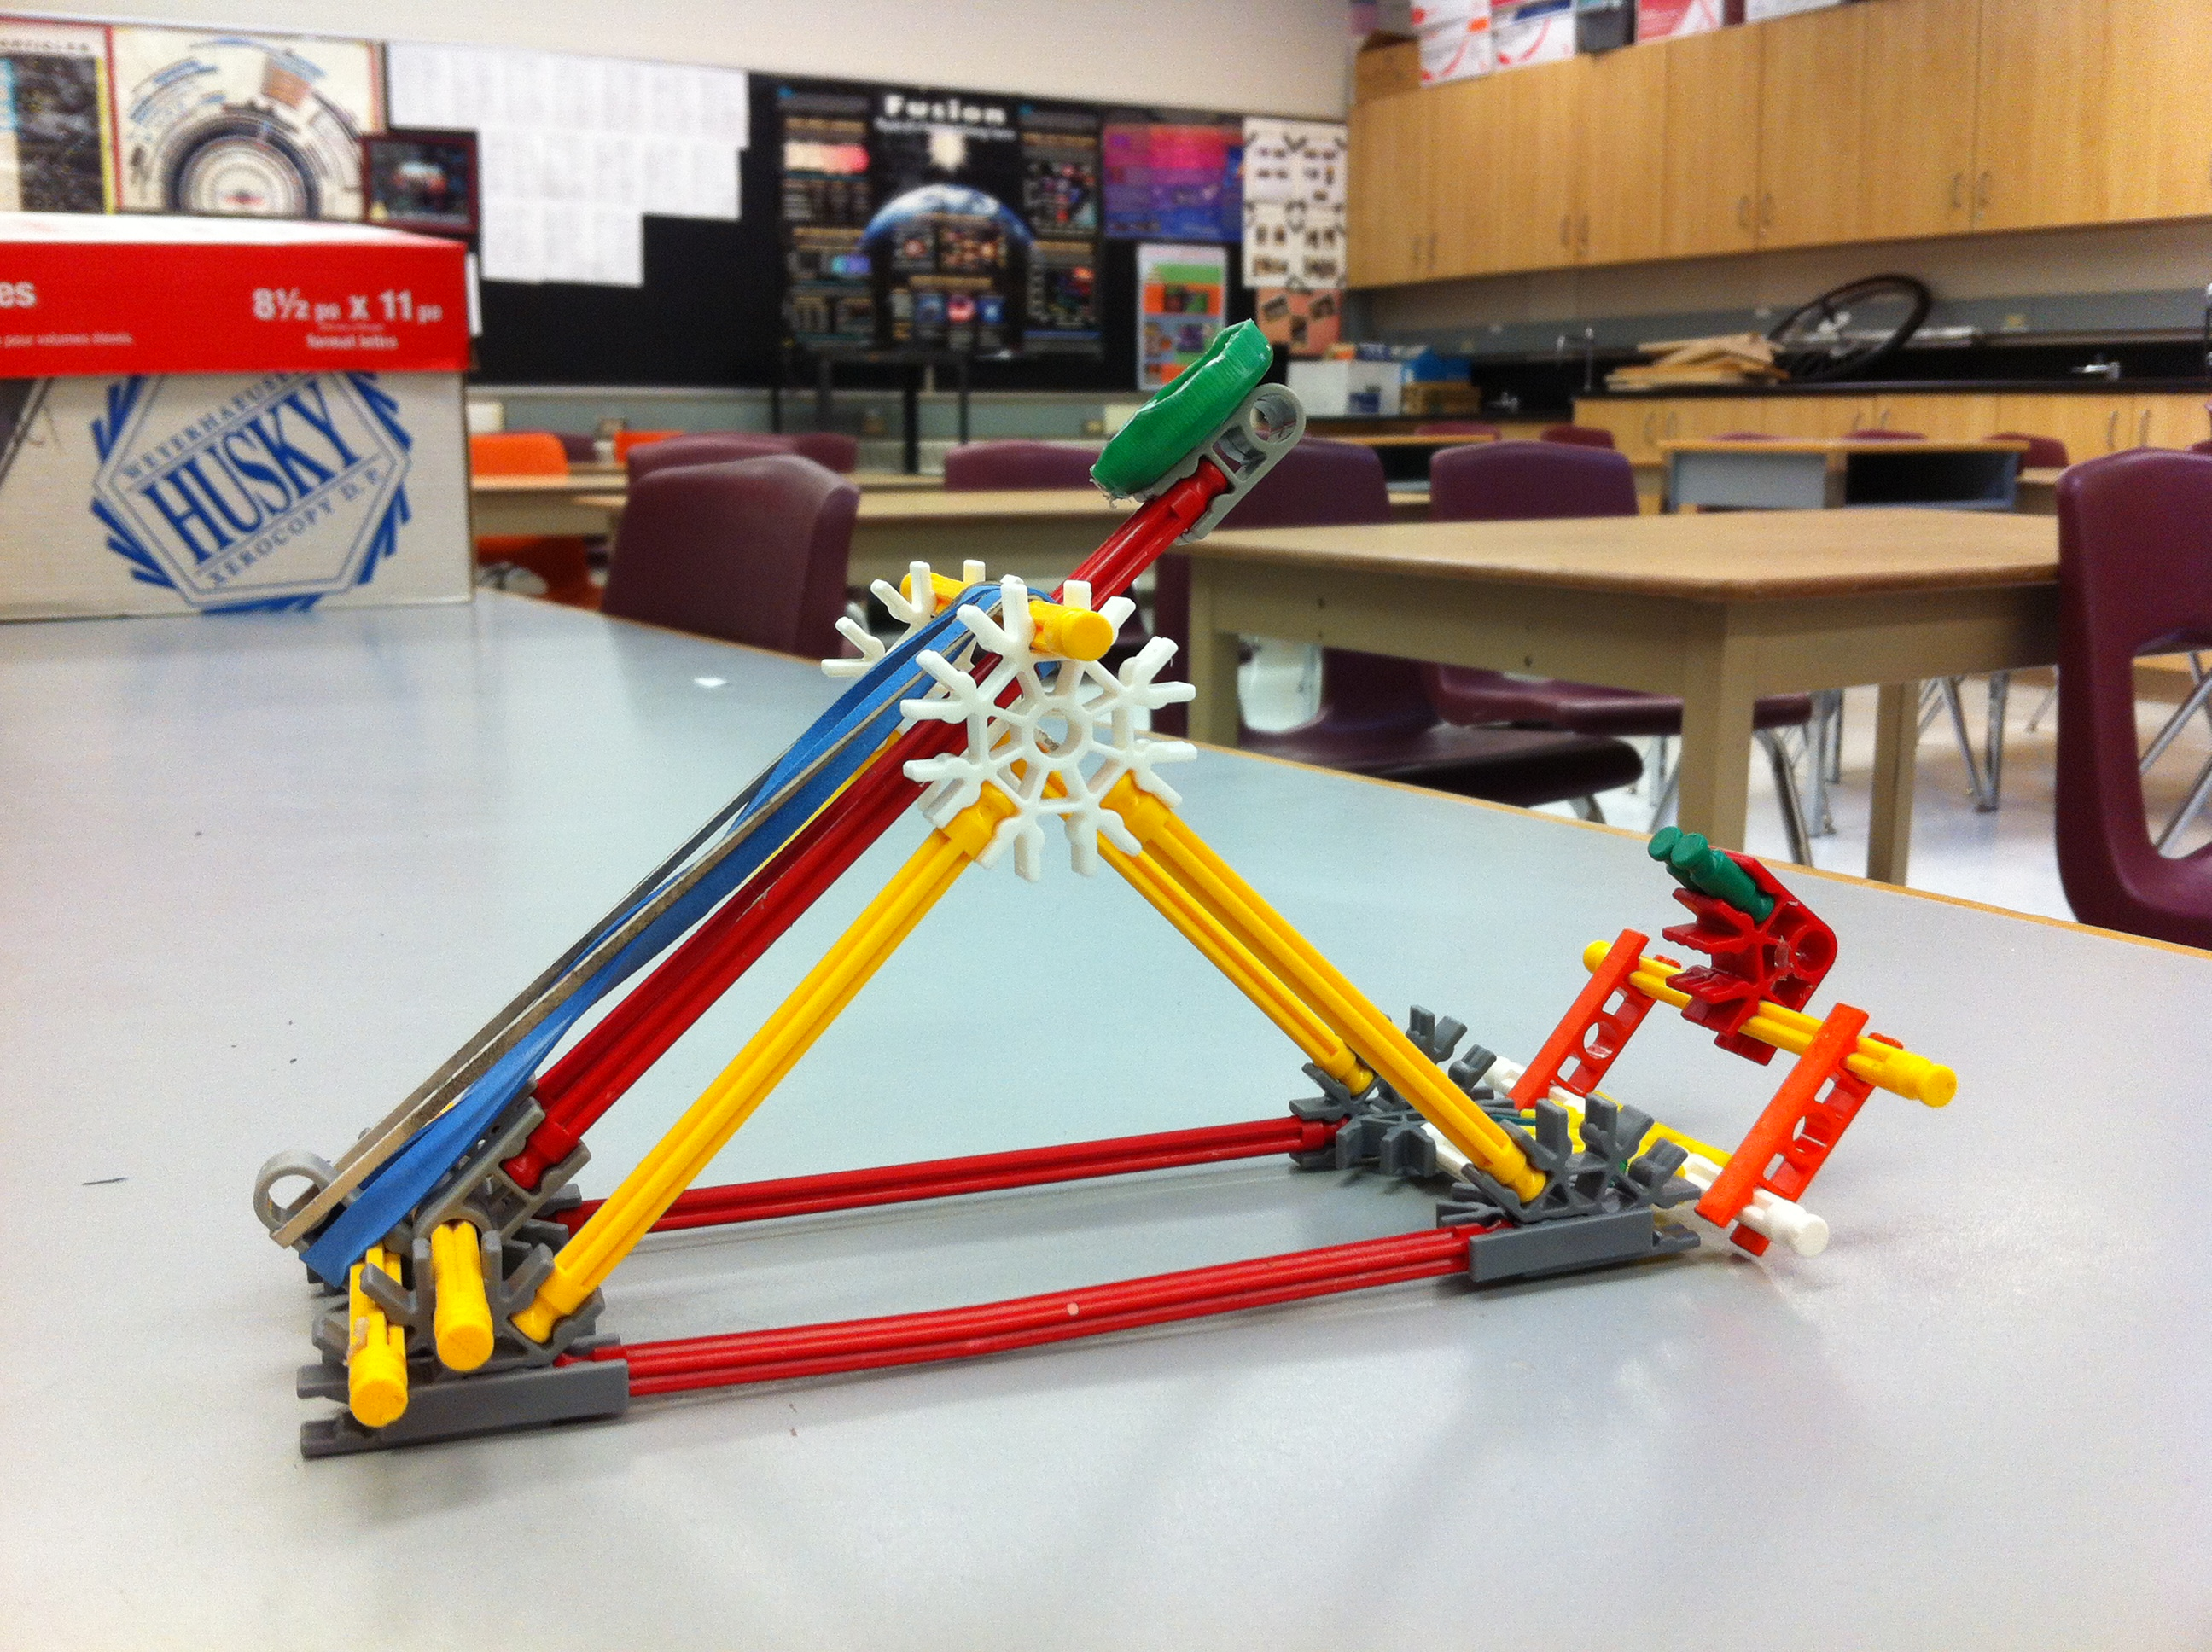 Energy And Motion Connections In A Knex Catapult Articles Oapt Diagram Of I Require Safety Device Latch So The Can Be Loaded Locked Released Upon Request This Also Reduces Likelihood That Student Gives